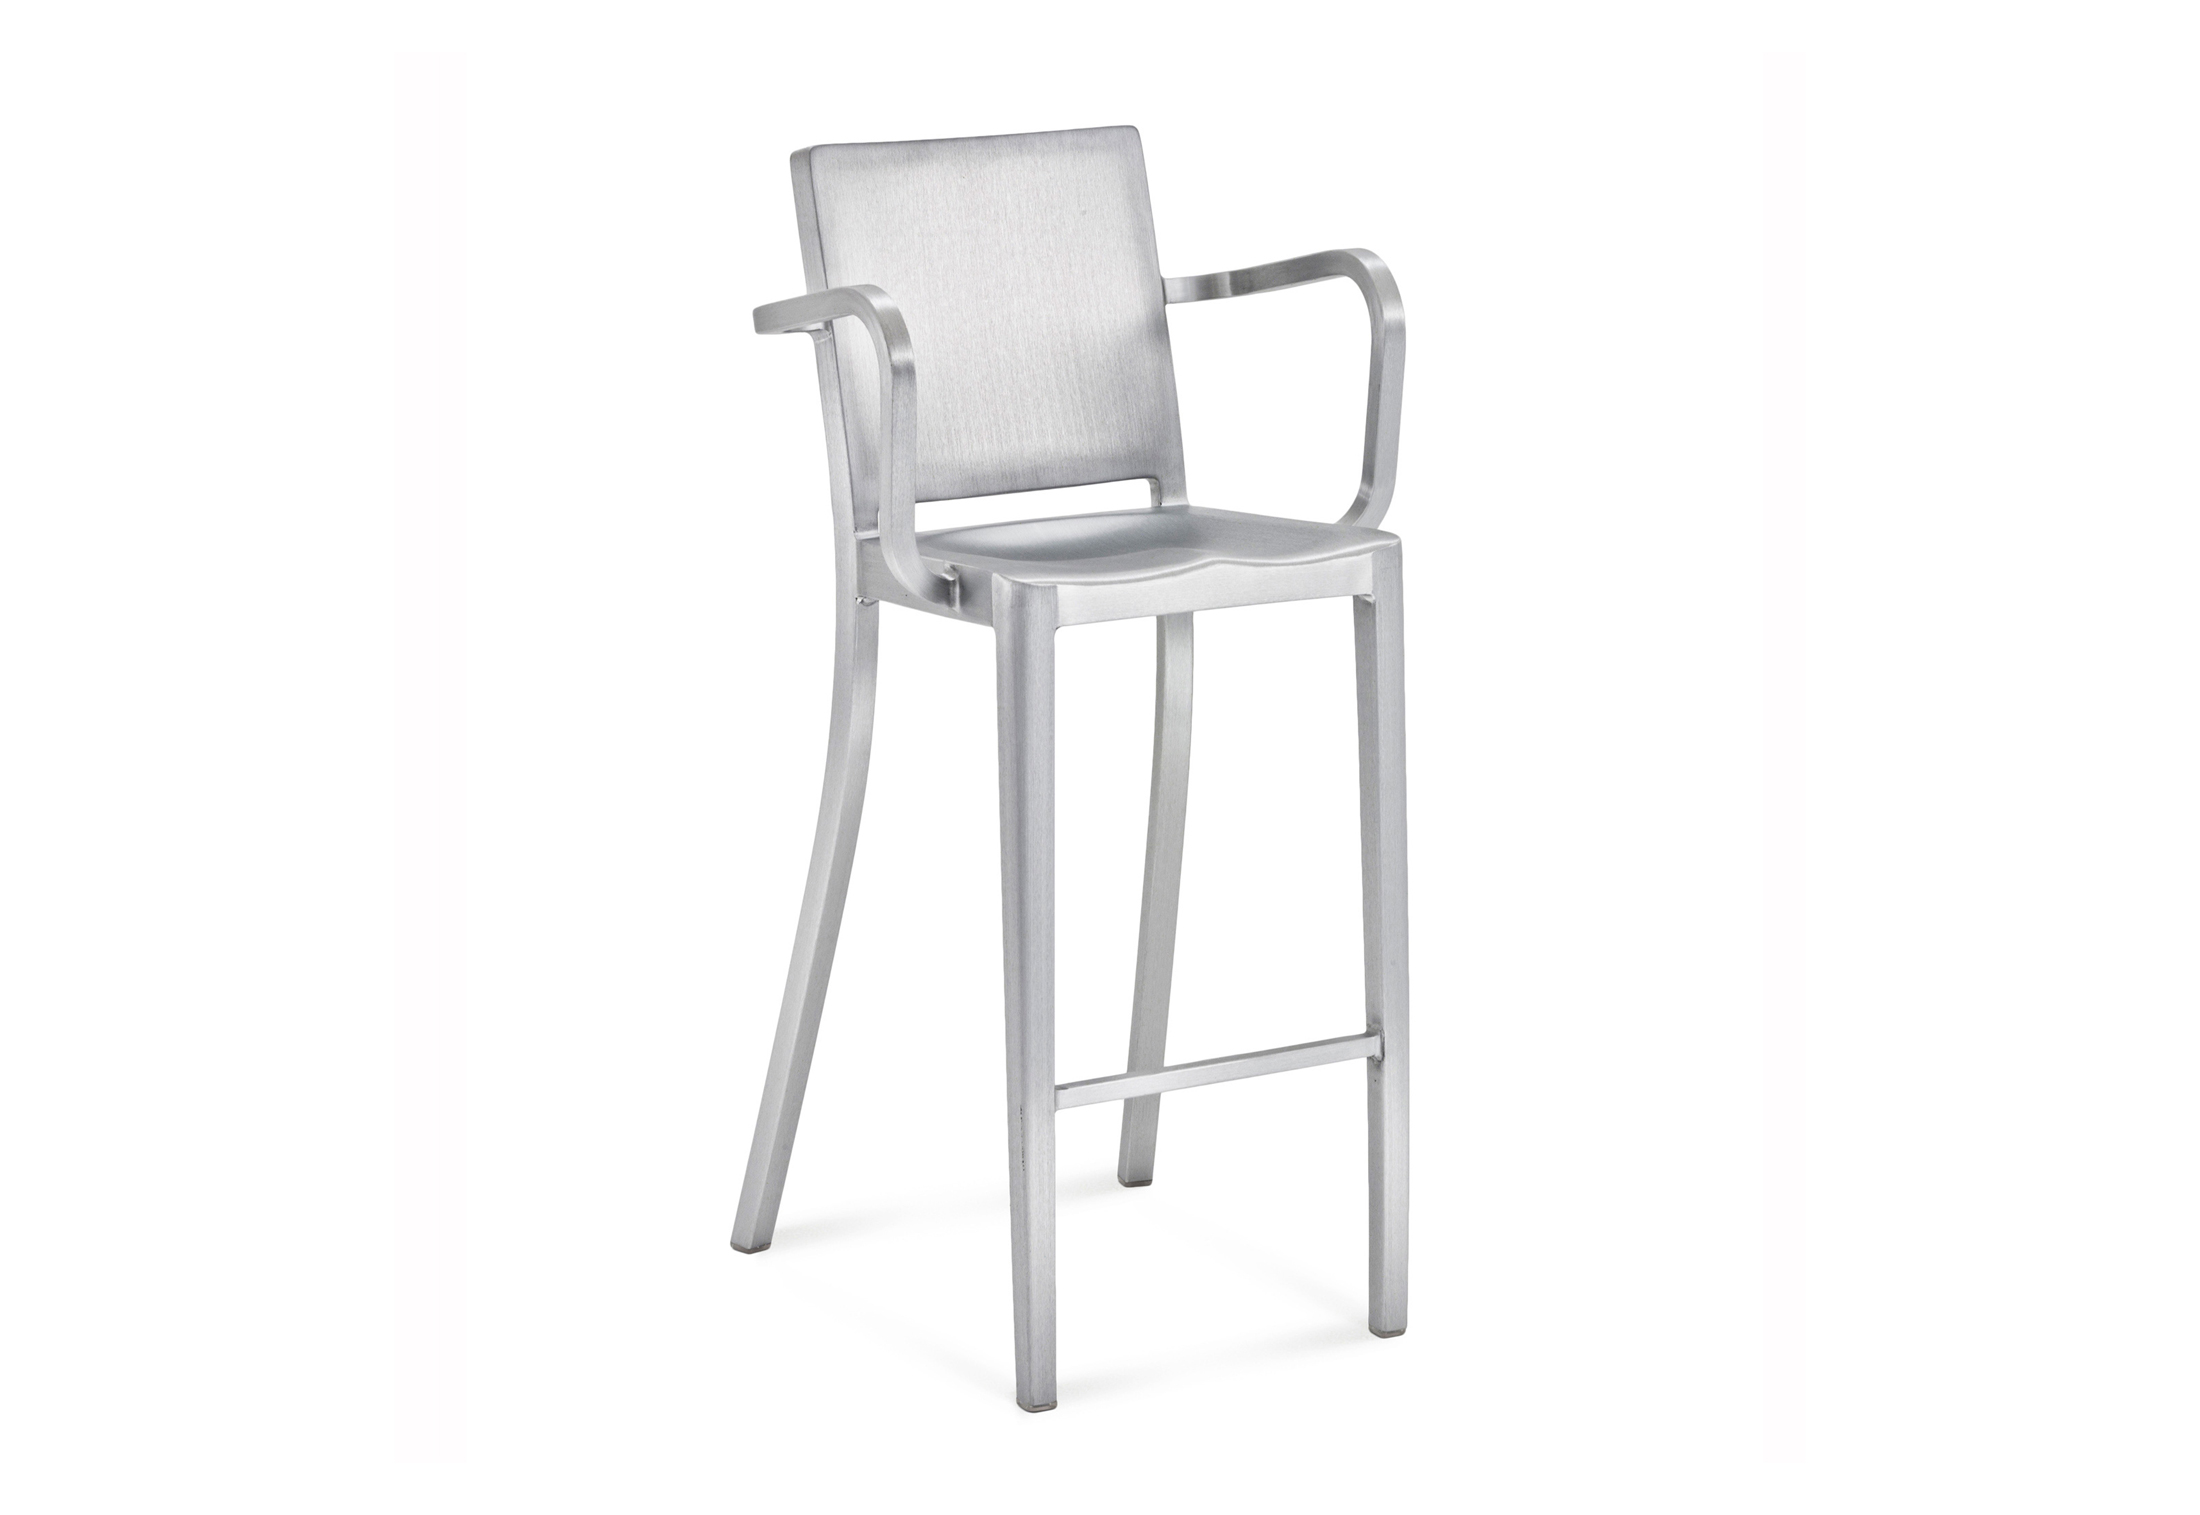 Sensational Hudson Bar Stool With Armrests By Emeco Stylepark Caraccident5 Cool Chair Designs And Ideas Caraccident5Info